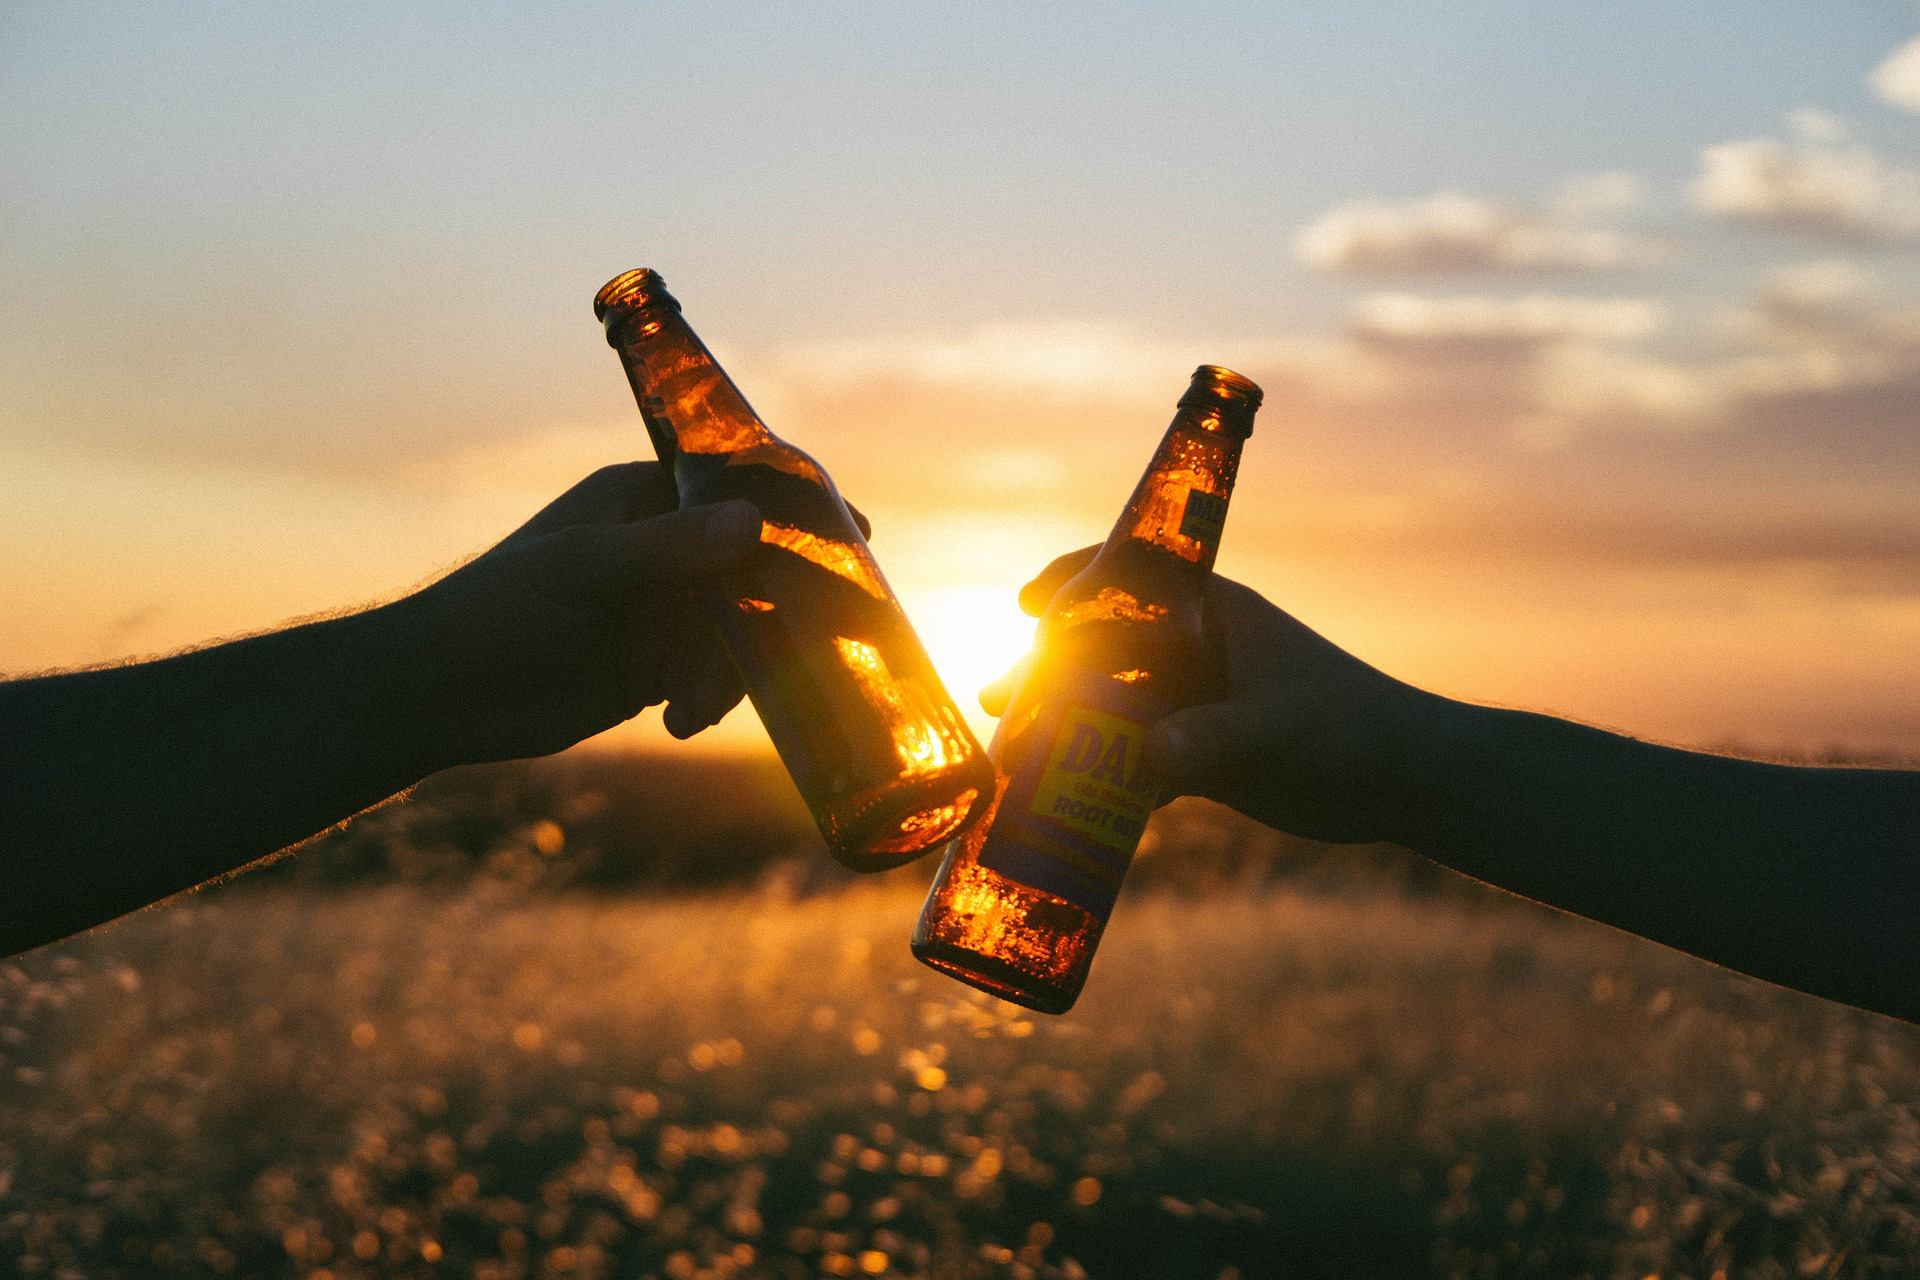 Thai Beverage Public Company Limited Joins In The Race To Capture Vietnam's Beer Market